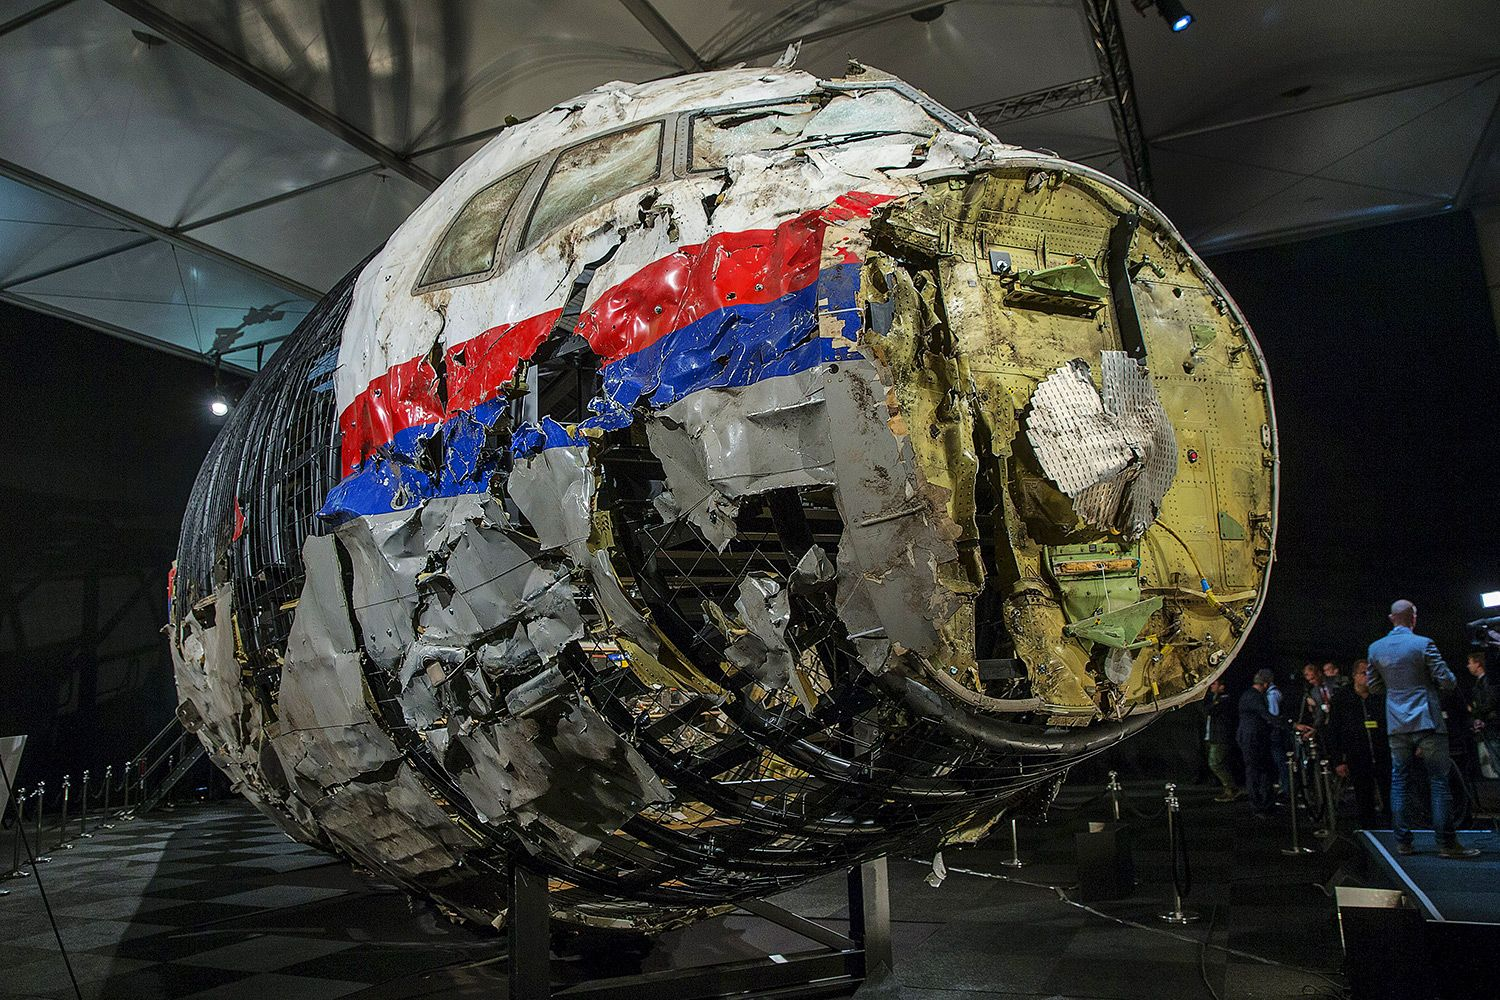 Responsibility for MH17tragedy: The Good, the Bad and the Ugly